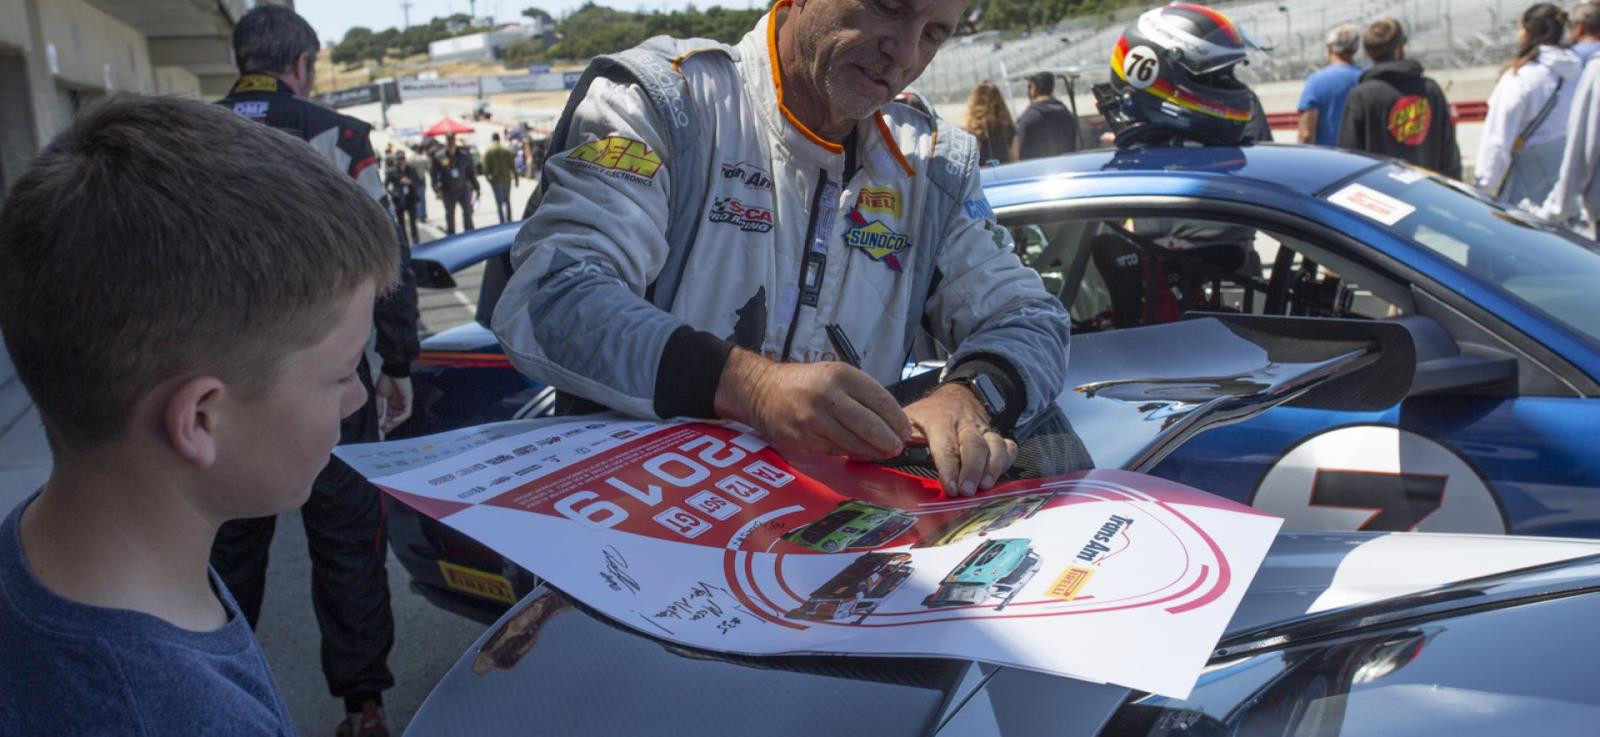 Photo of racer signing poster for adolescent